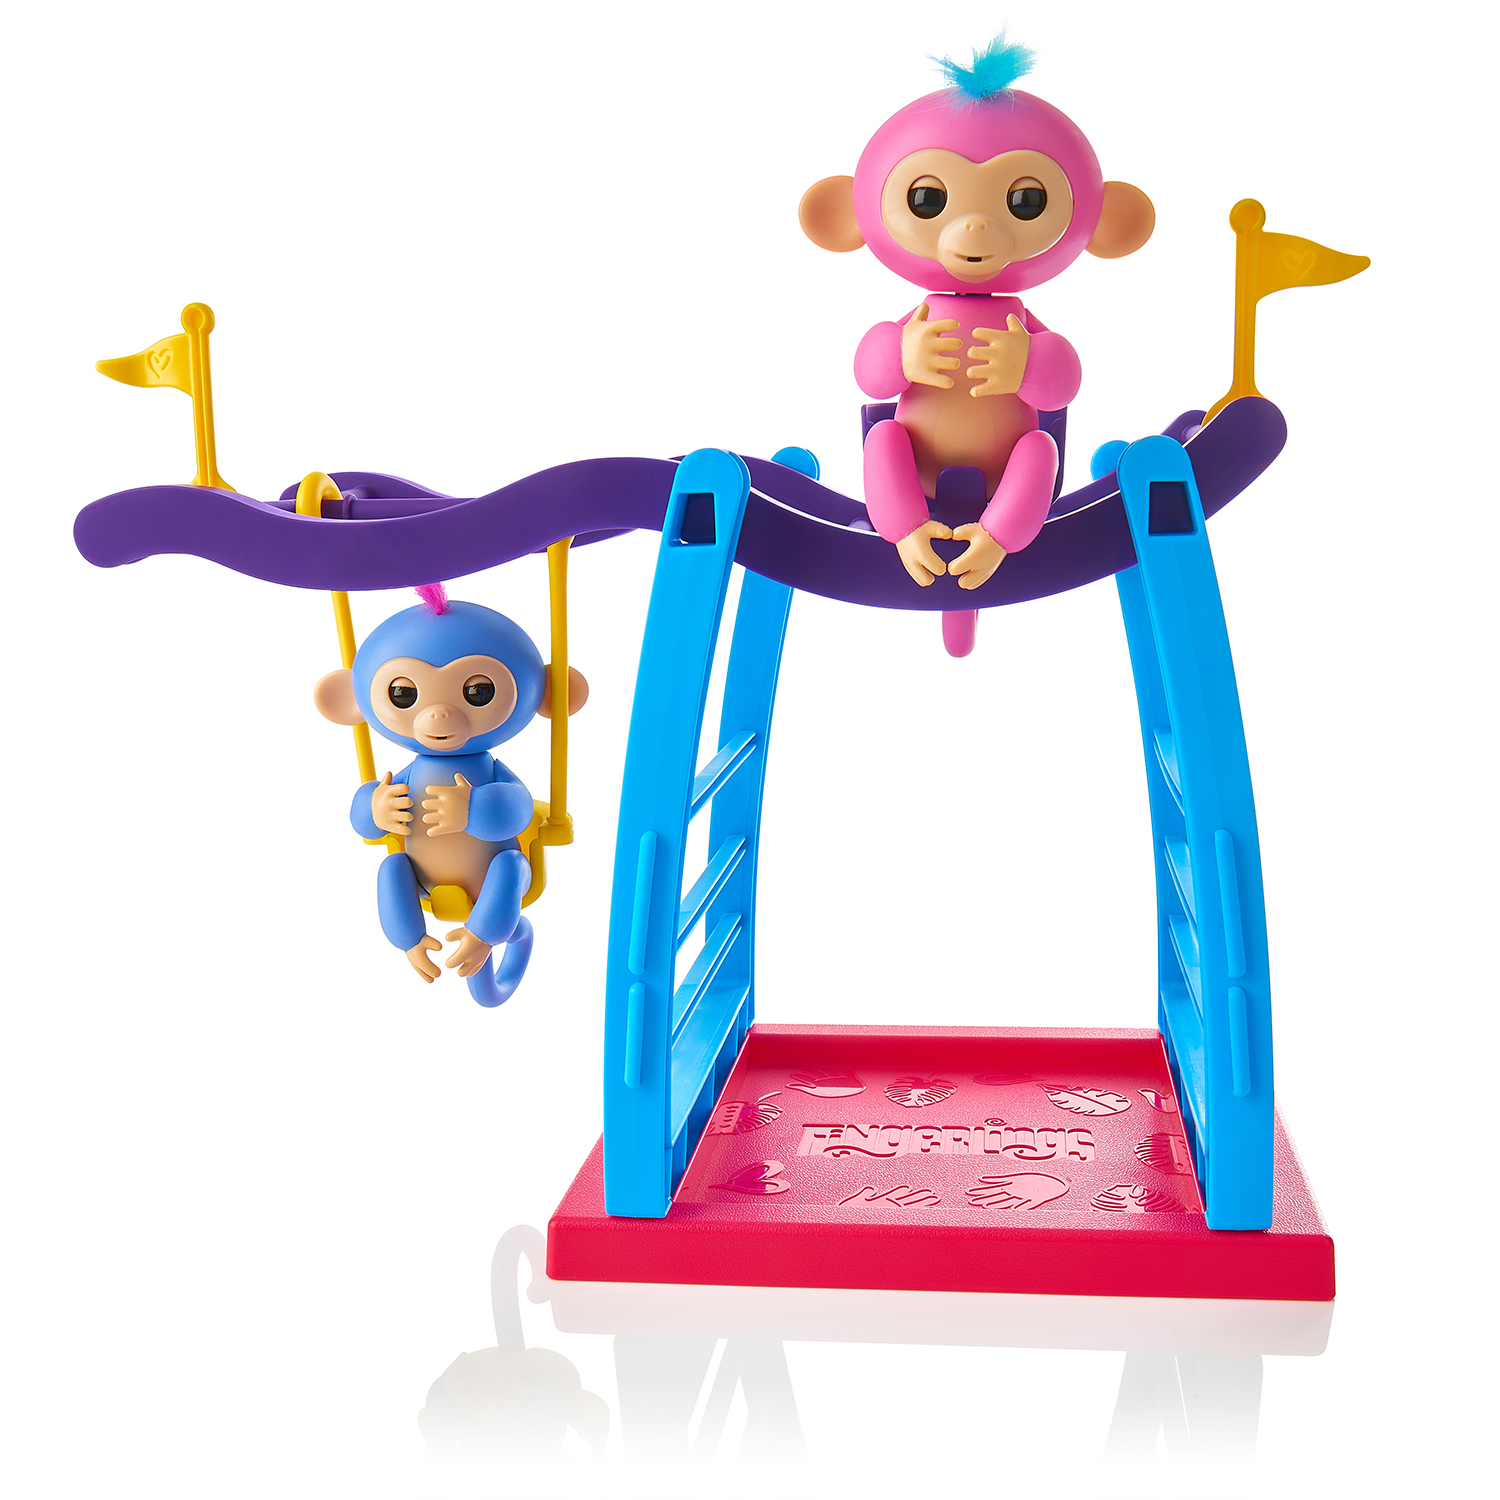 Fingerlings Play Set - Monkey Bar/Swing + 2 Monkeys (Liv & Simona) By WowWee